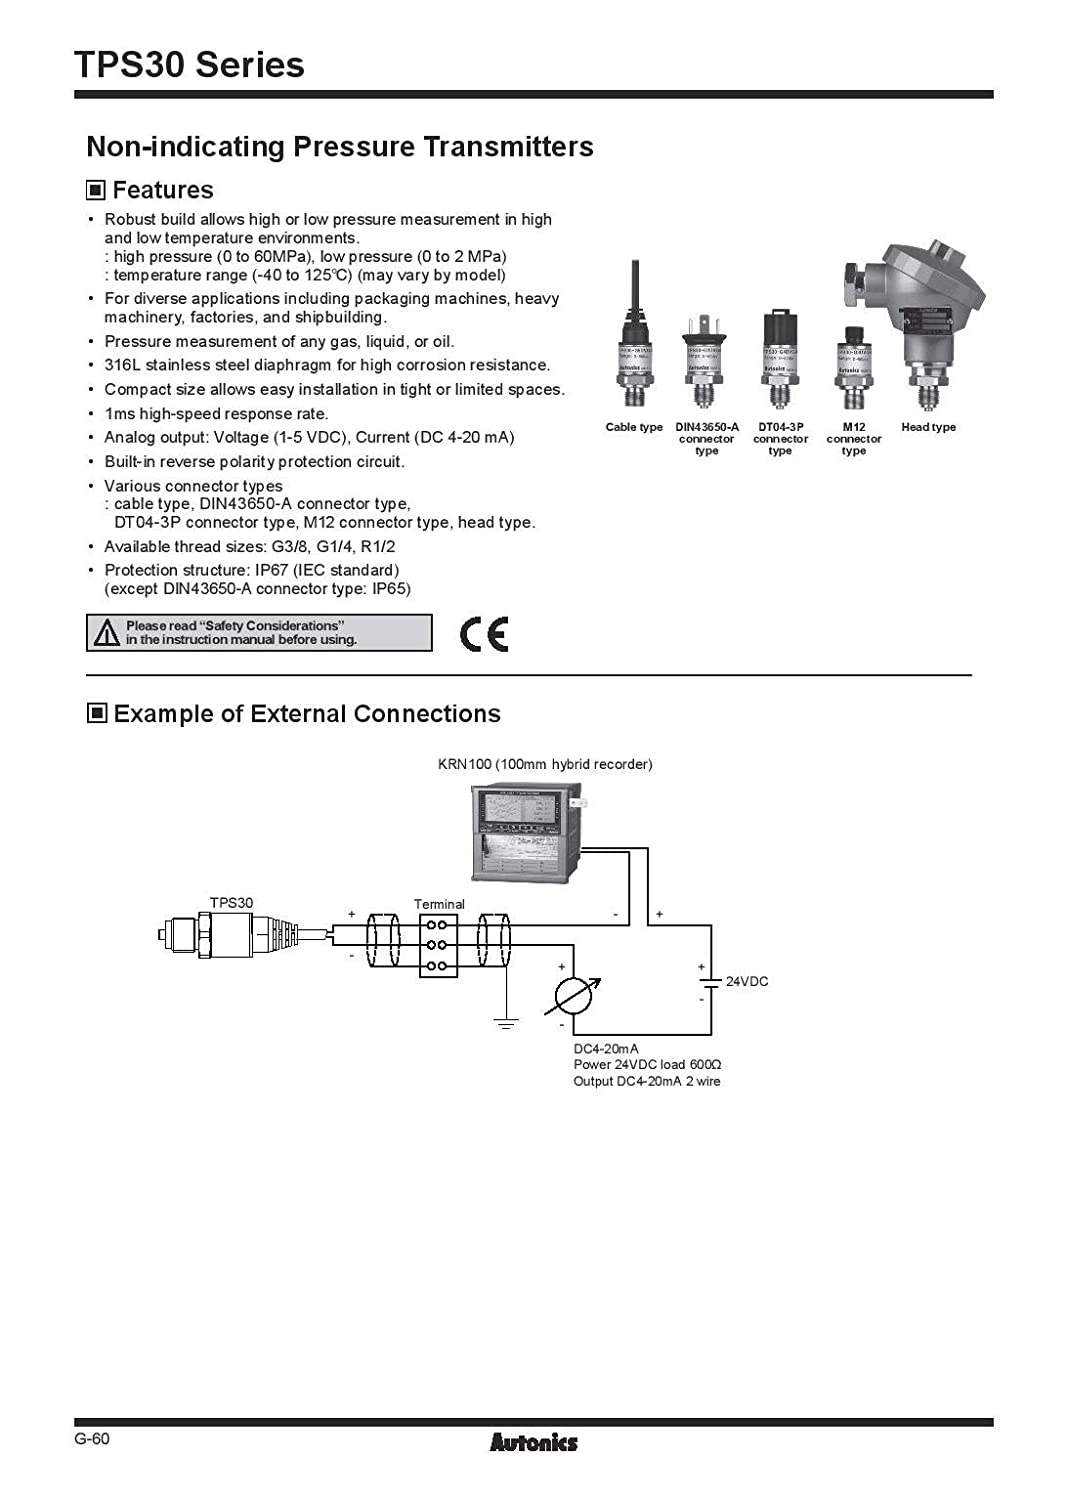 Gauge Pressure NPT1//4 DIN 43650-A Connector Type 0 to 0.7Mpa TPS30-G25AN4-00 Pressure Transmitter 4-20 mA Output